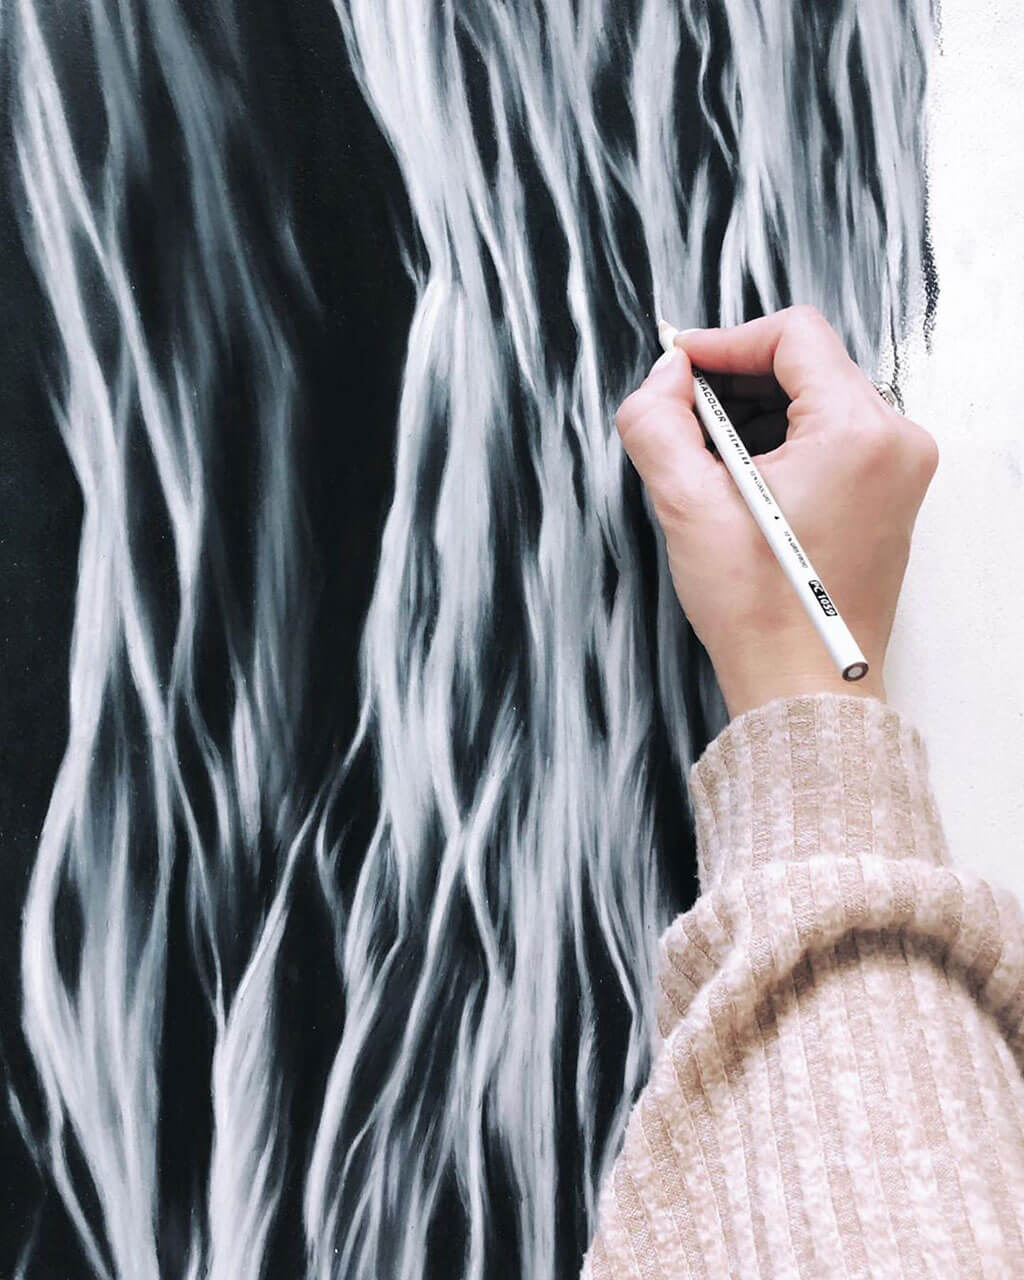 Hand-drawn ocean waves